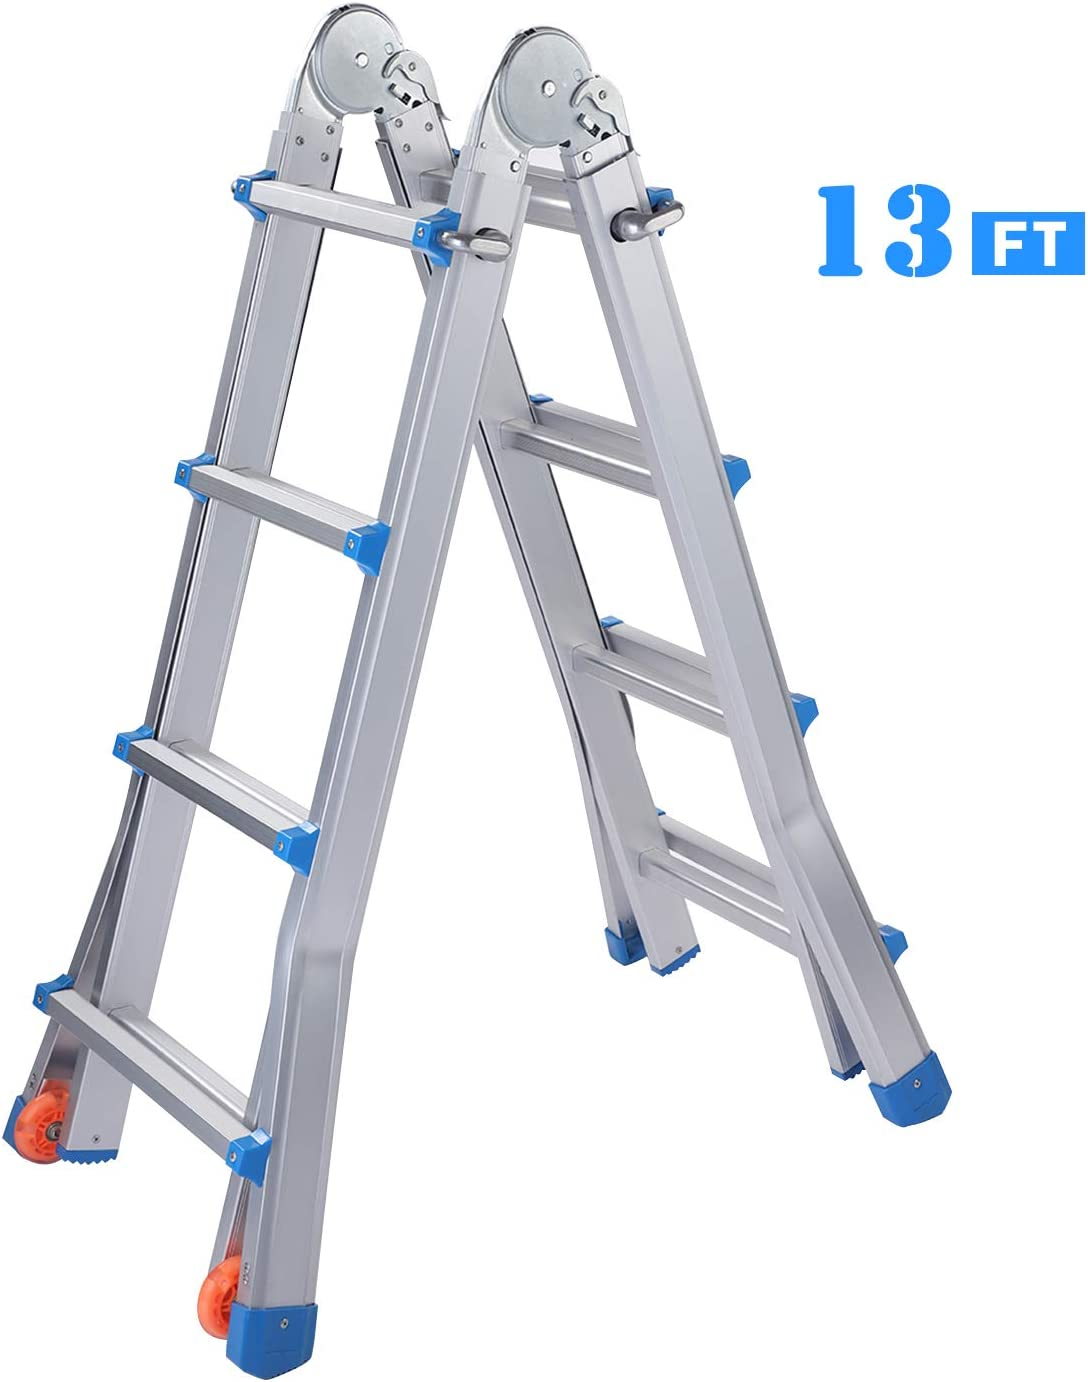 Snow Fox Extension Ladder 13 Feet Aluminum Extension Multi-Position Ladder Adjustable Telescoping Ladder with Protective Lock and 2 Wheels